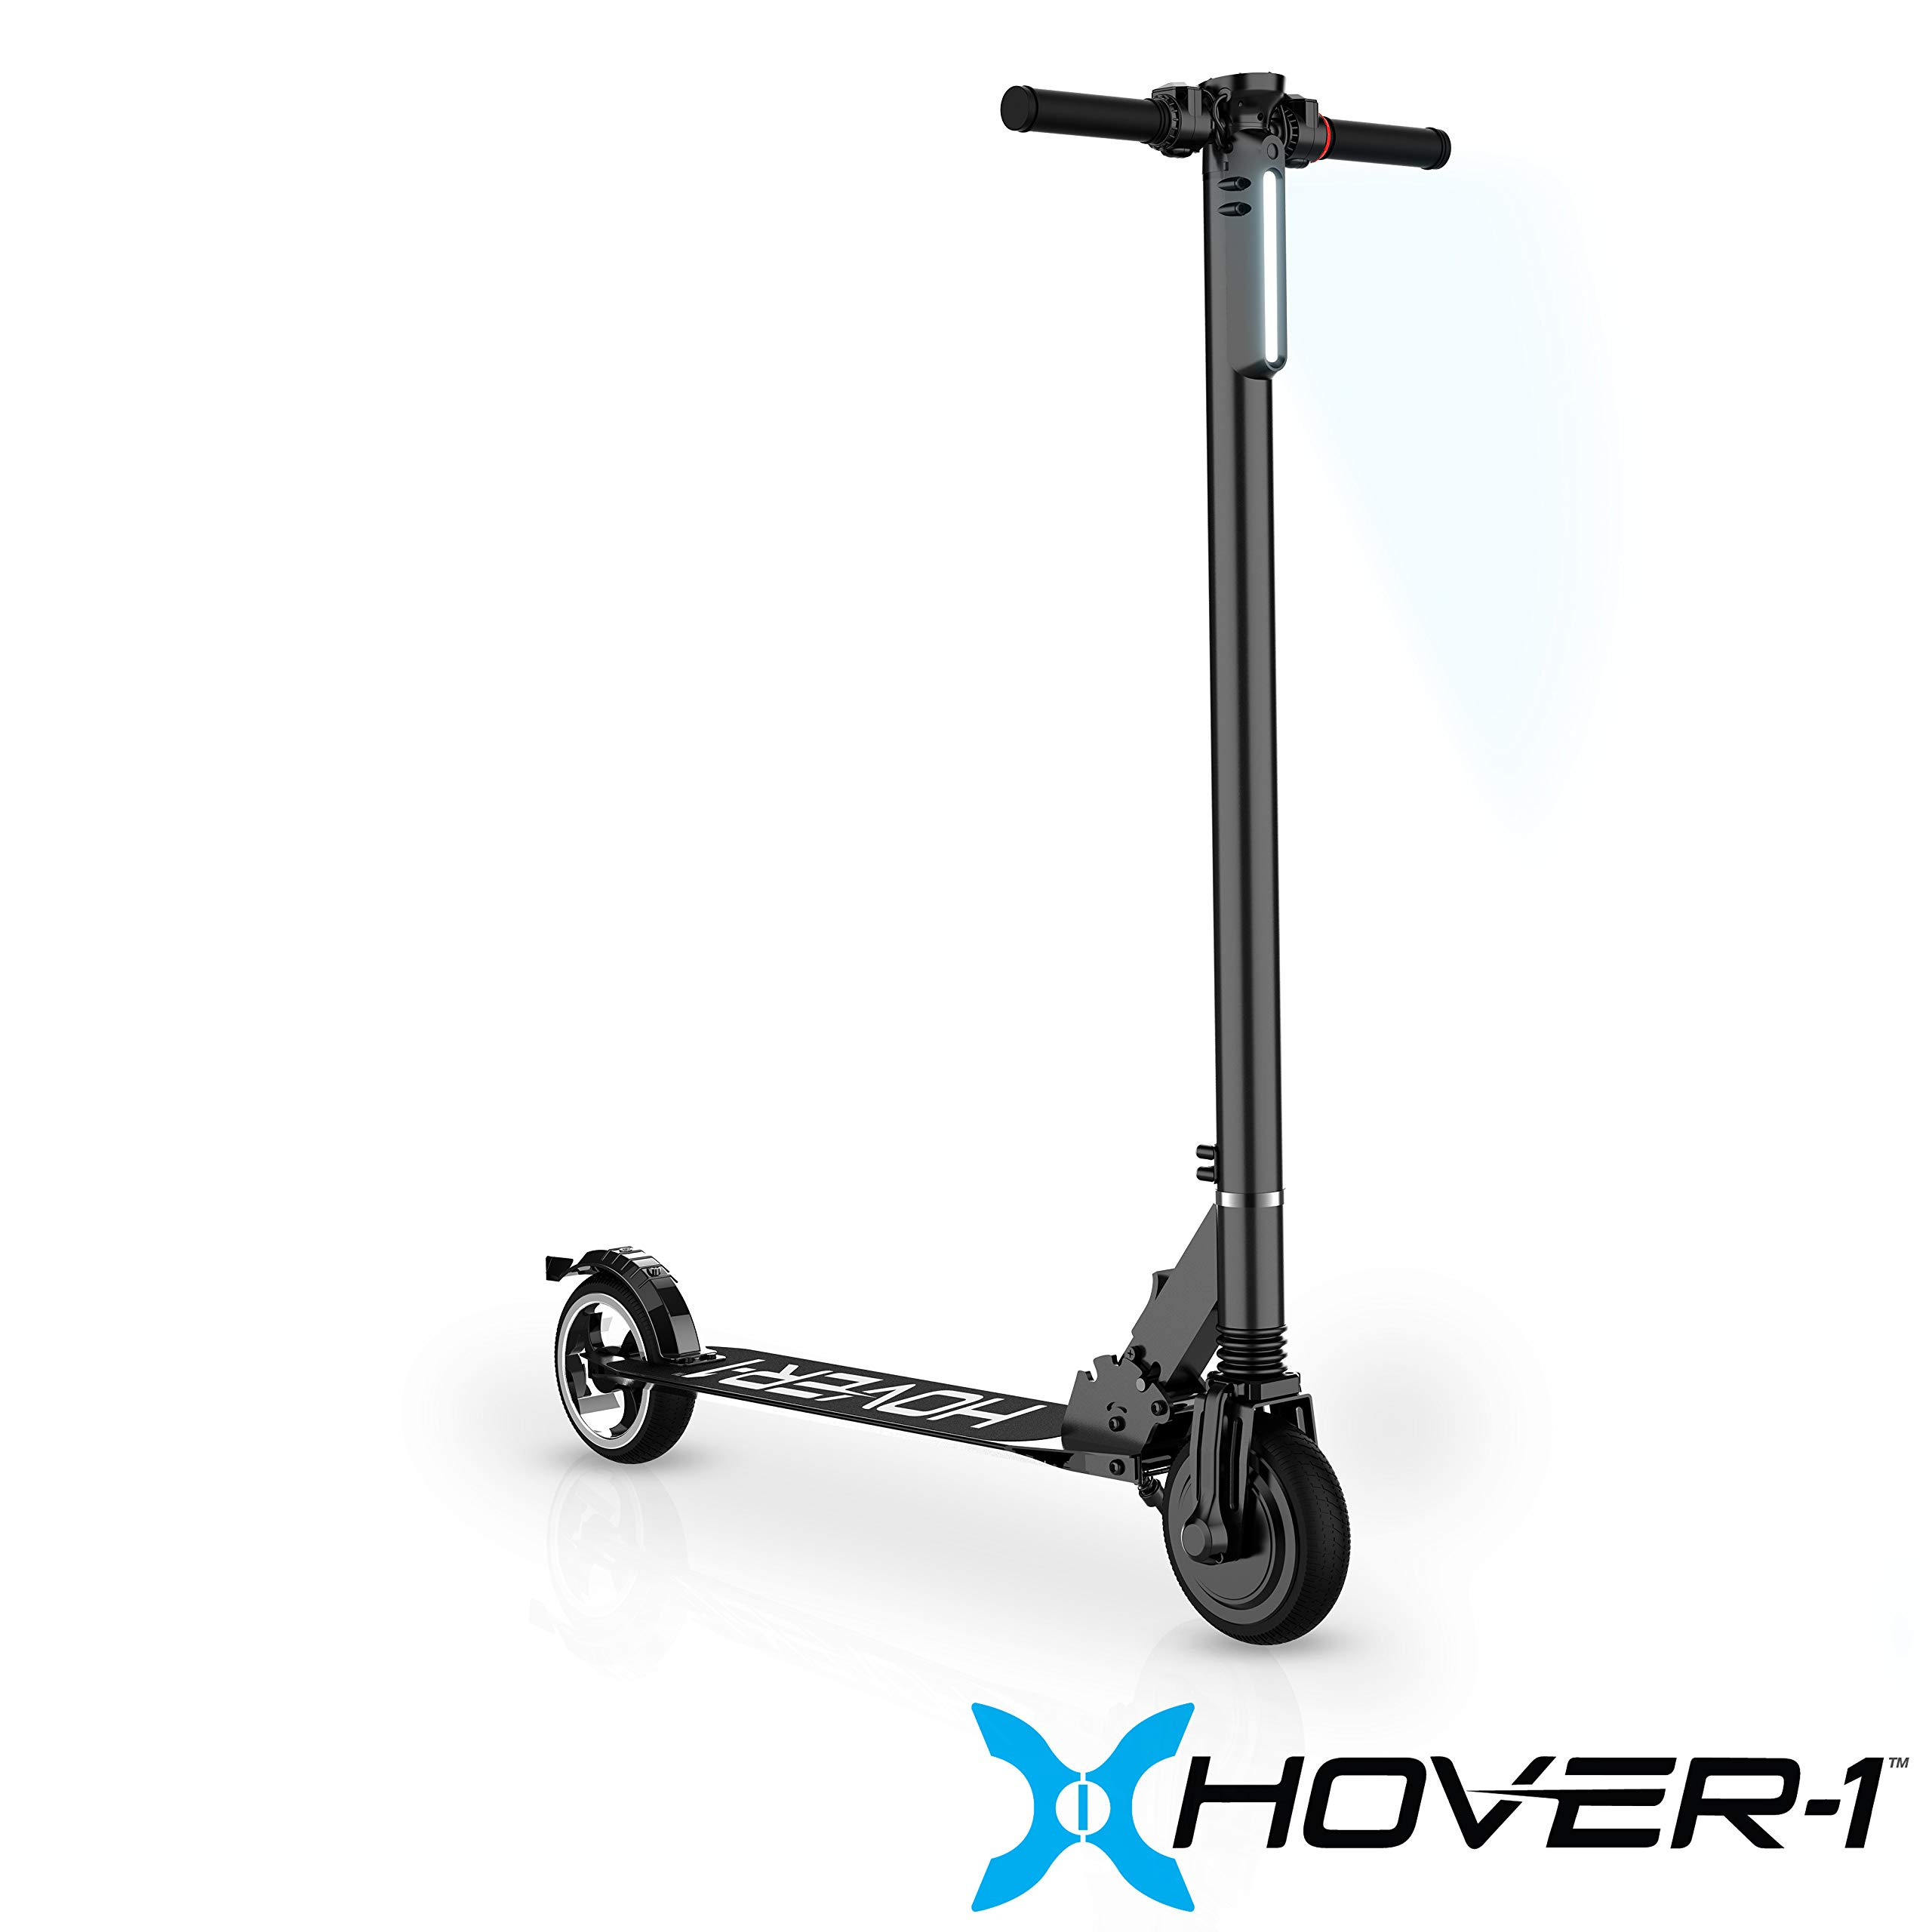 Hover-1 Rally Folding Electric Scooter by HOVER-1